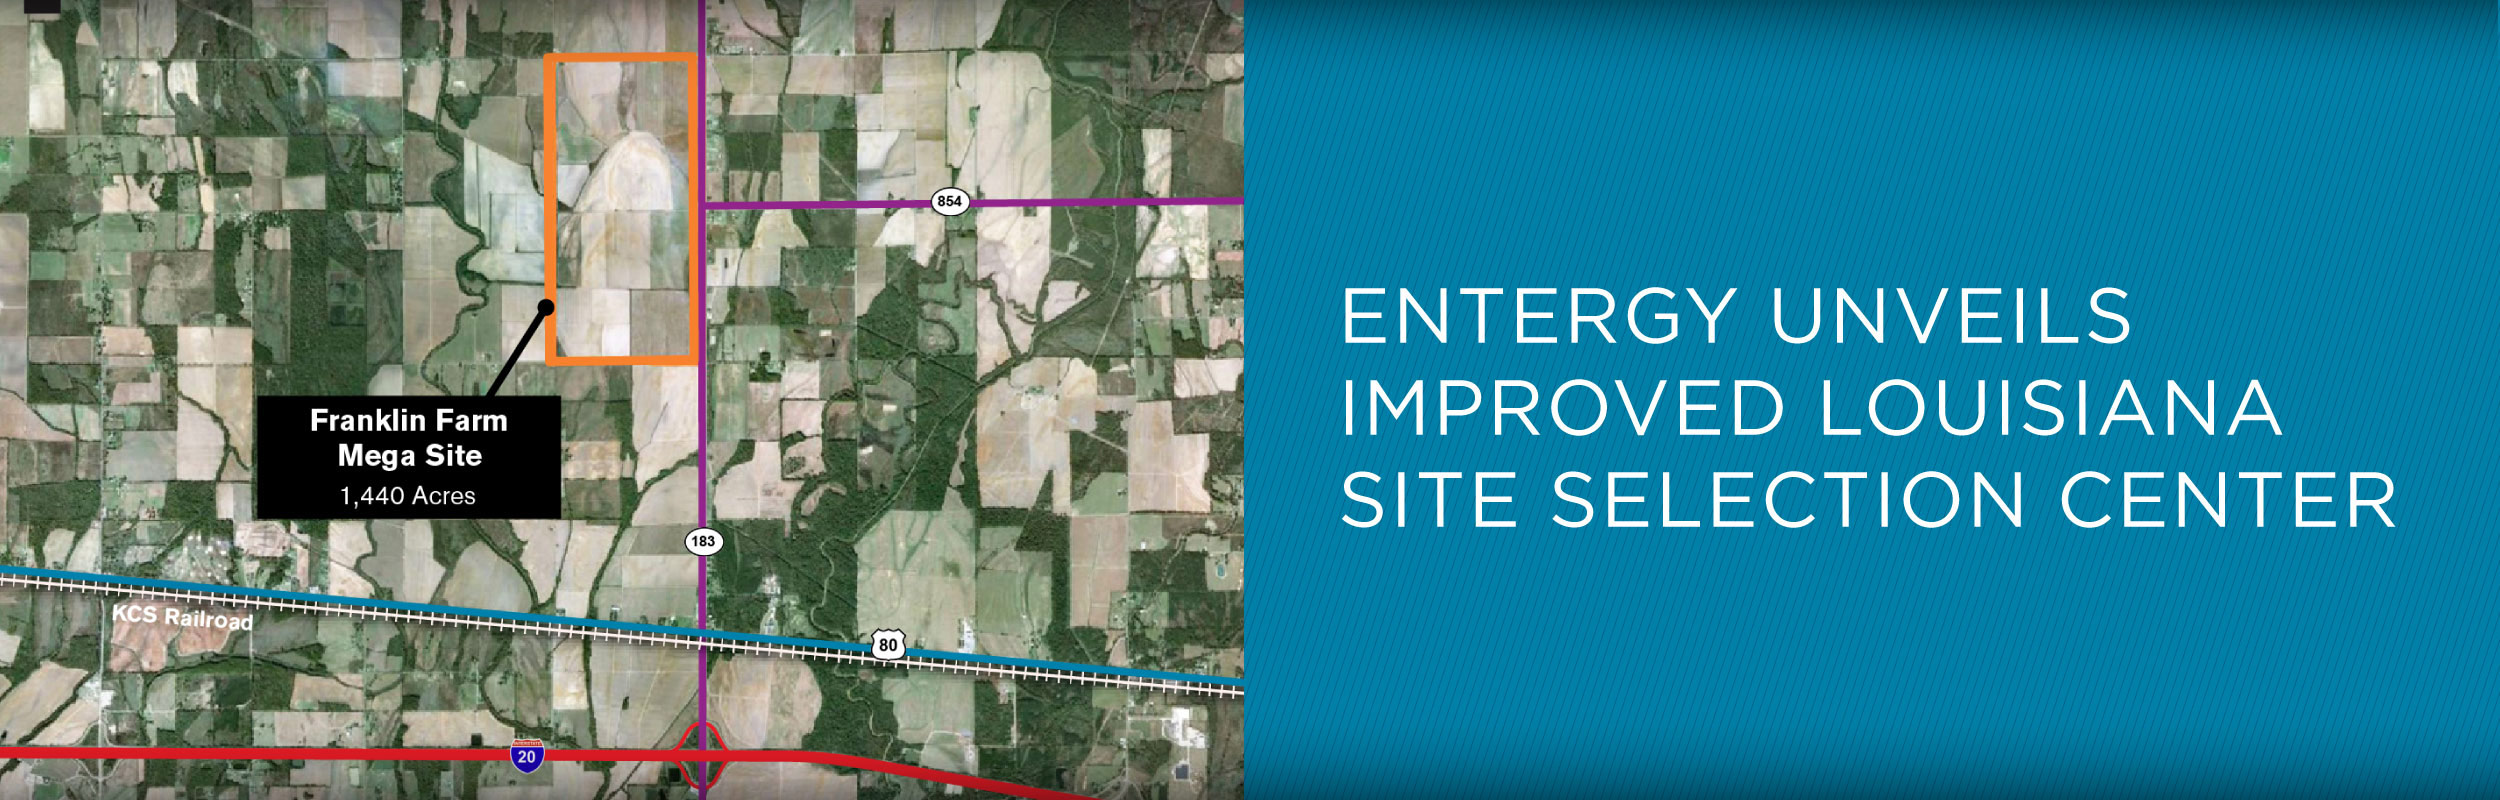 Entergy unveils improved site selection center